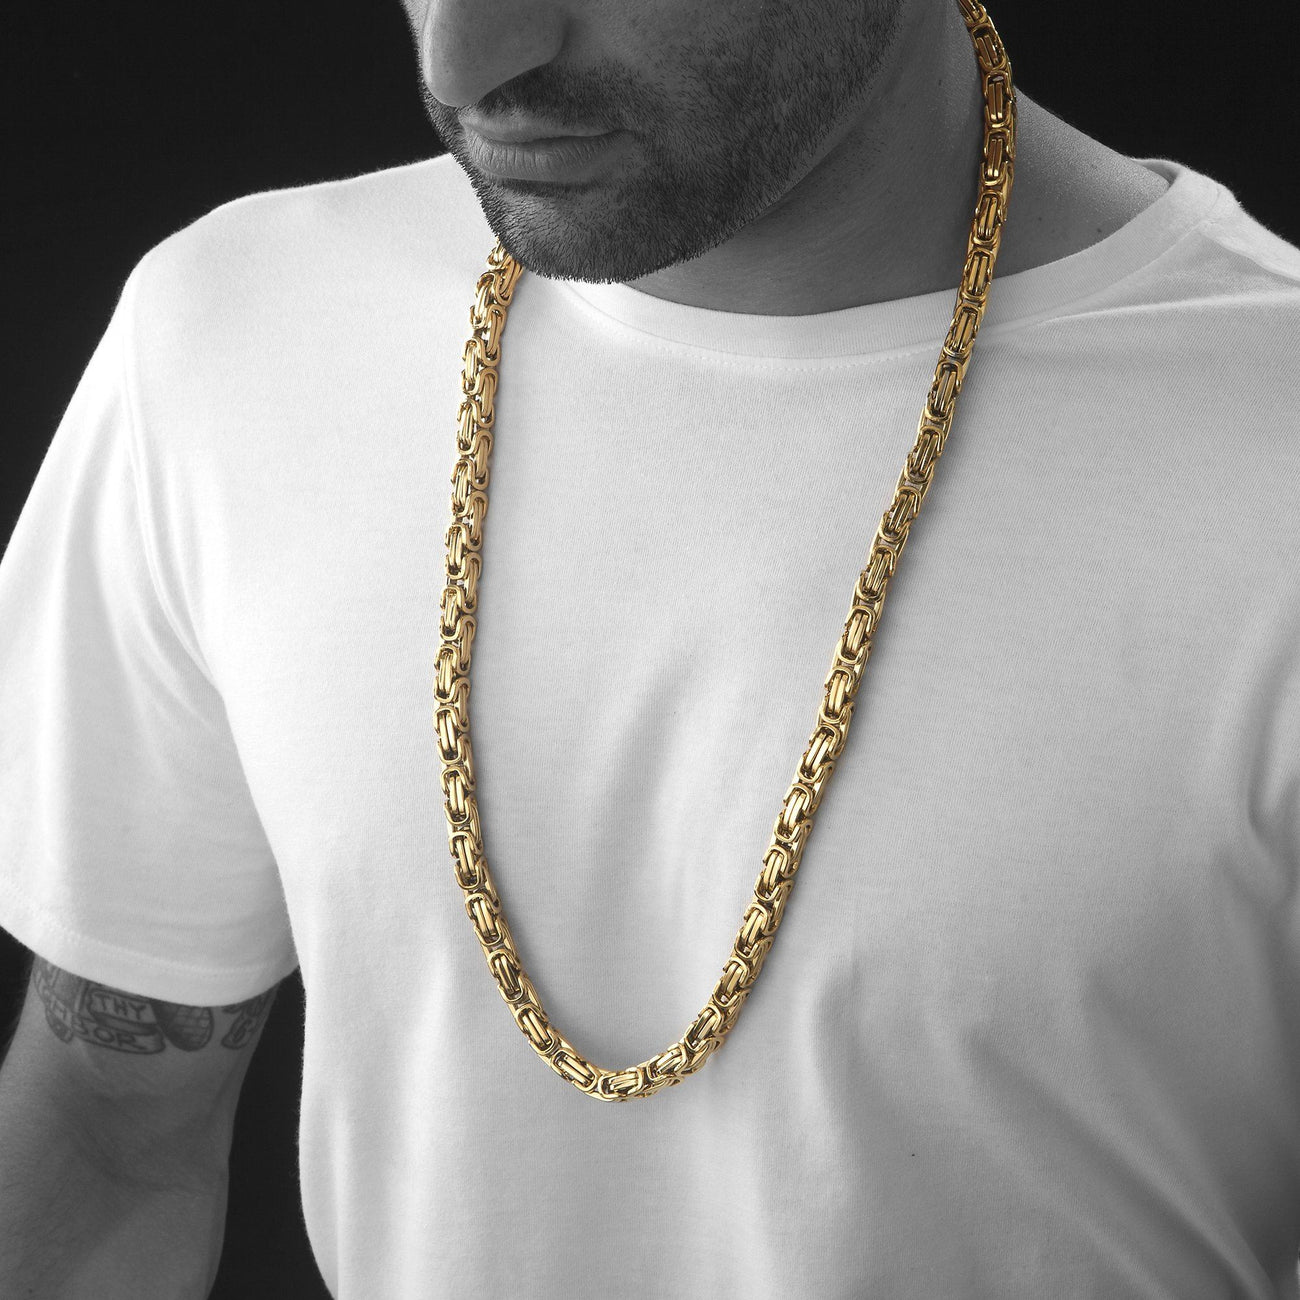 Chains - 8mm Large Gold Stainless Steel Byzantine Chain